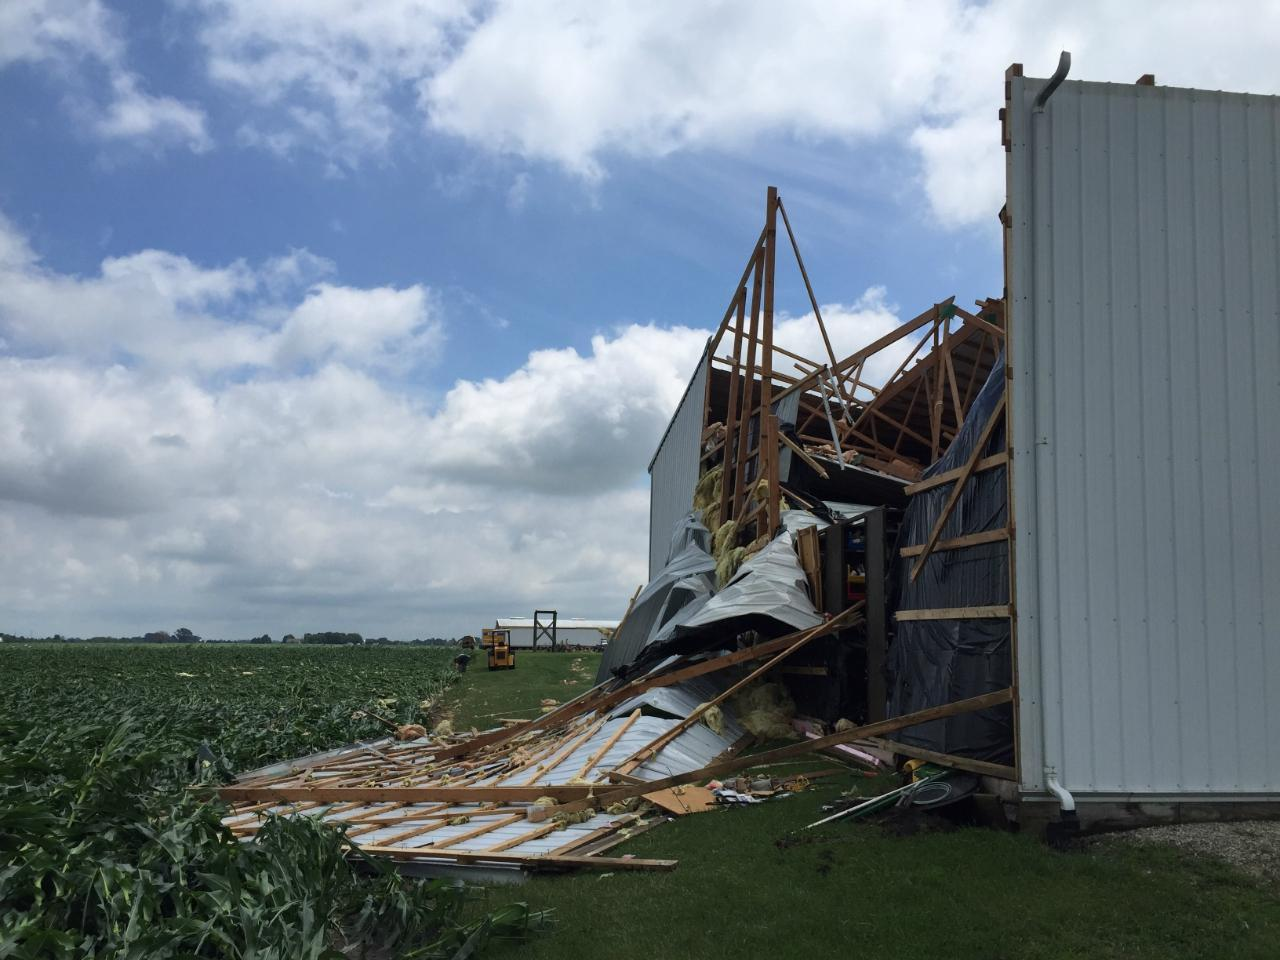 Damage reported from tornadoes in Illinois